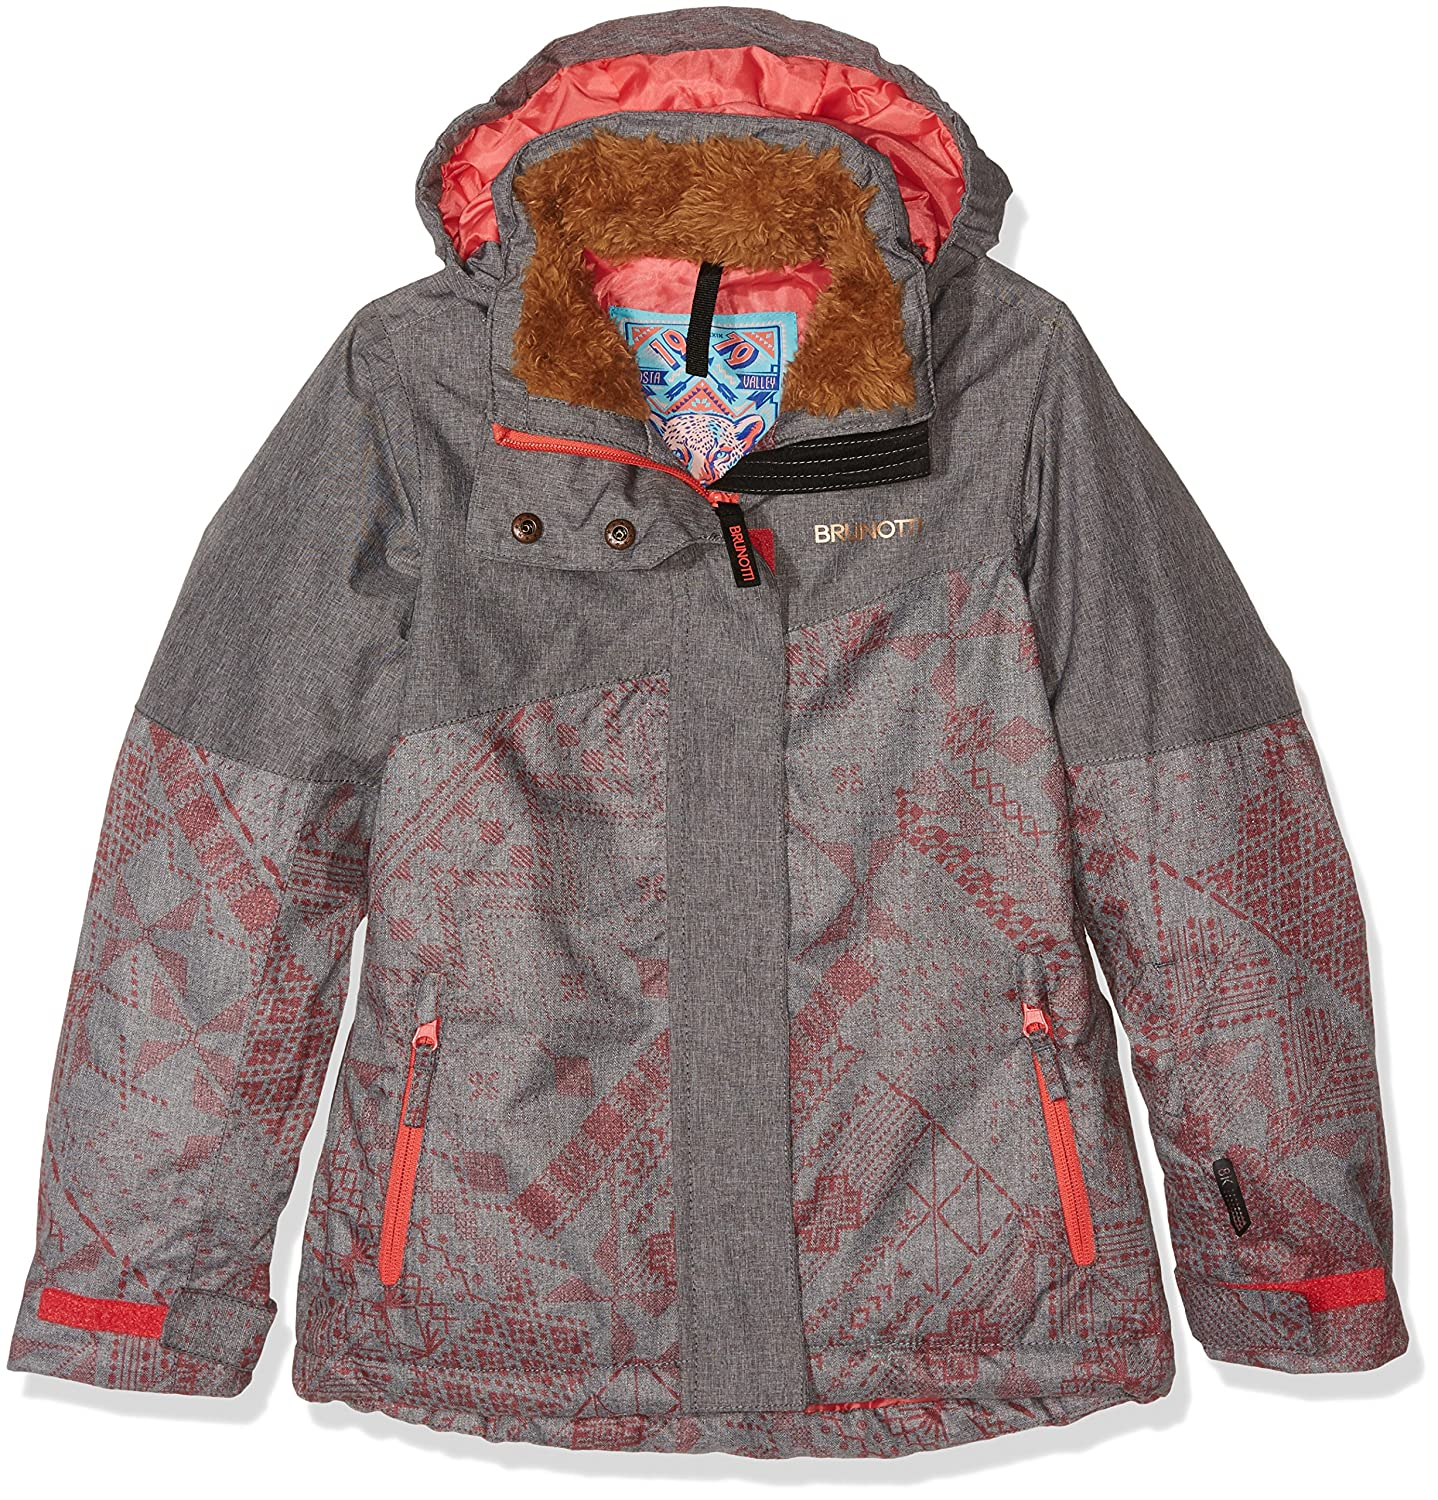 Brunotti Jari Neala Jr Bambina Girls Giacca, Bambina, Jarineala JR Girls Jacket, Shine, 152 BRUOT|#Brunotti 162242526